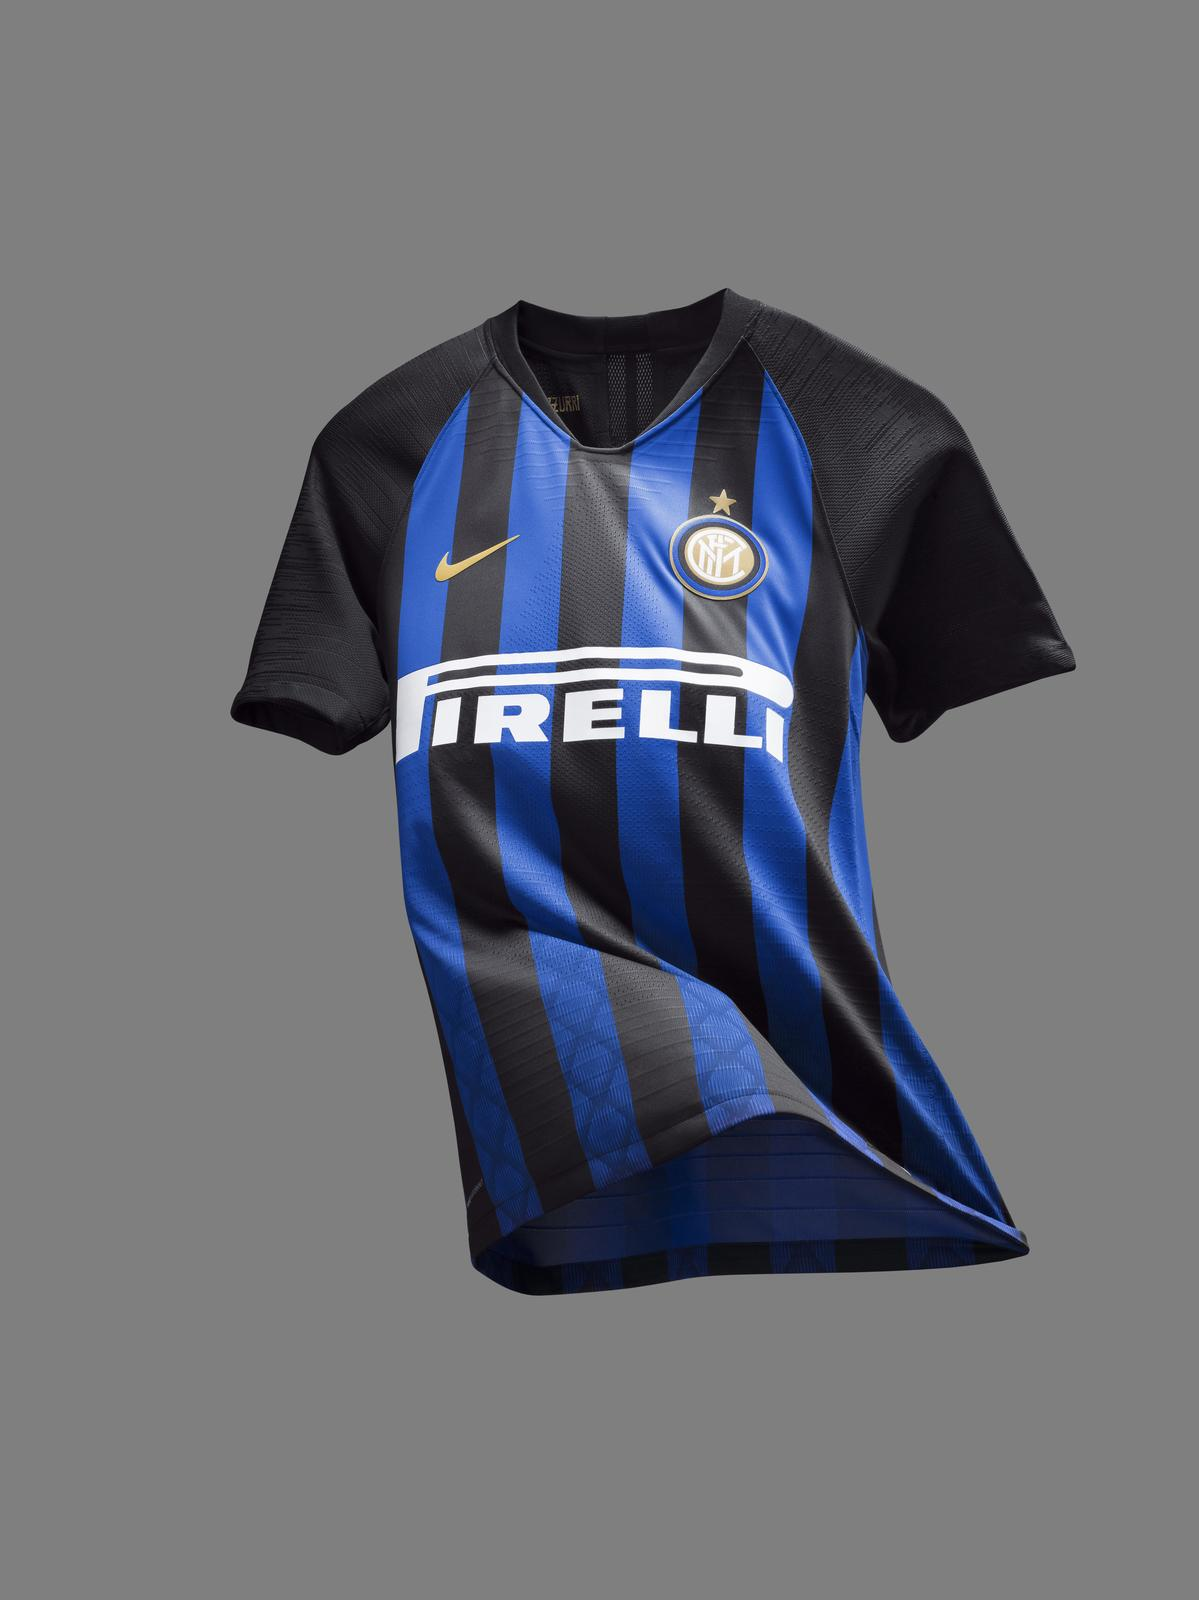 Inter Milan and Nike Celebrate 20 Years of Partnership 0